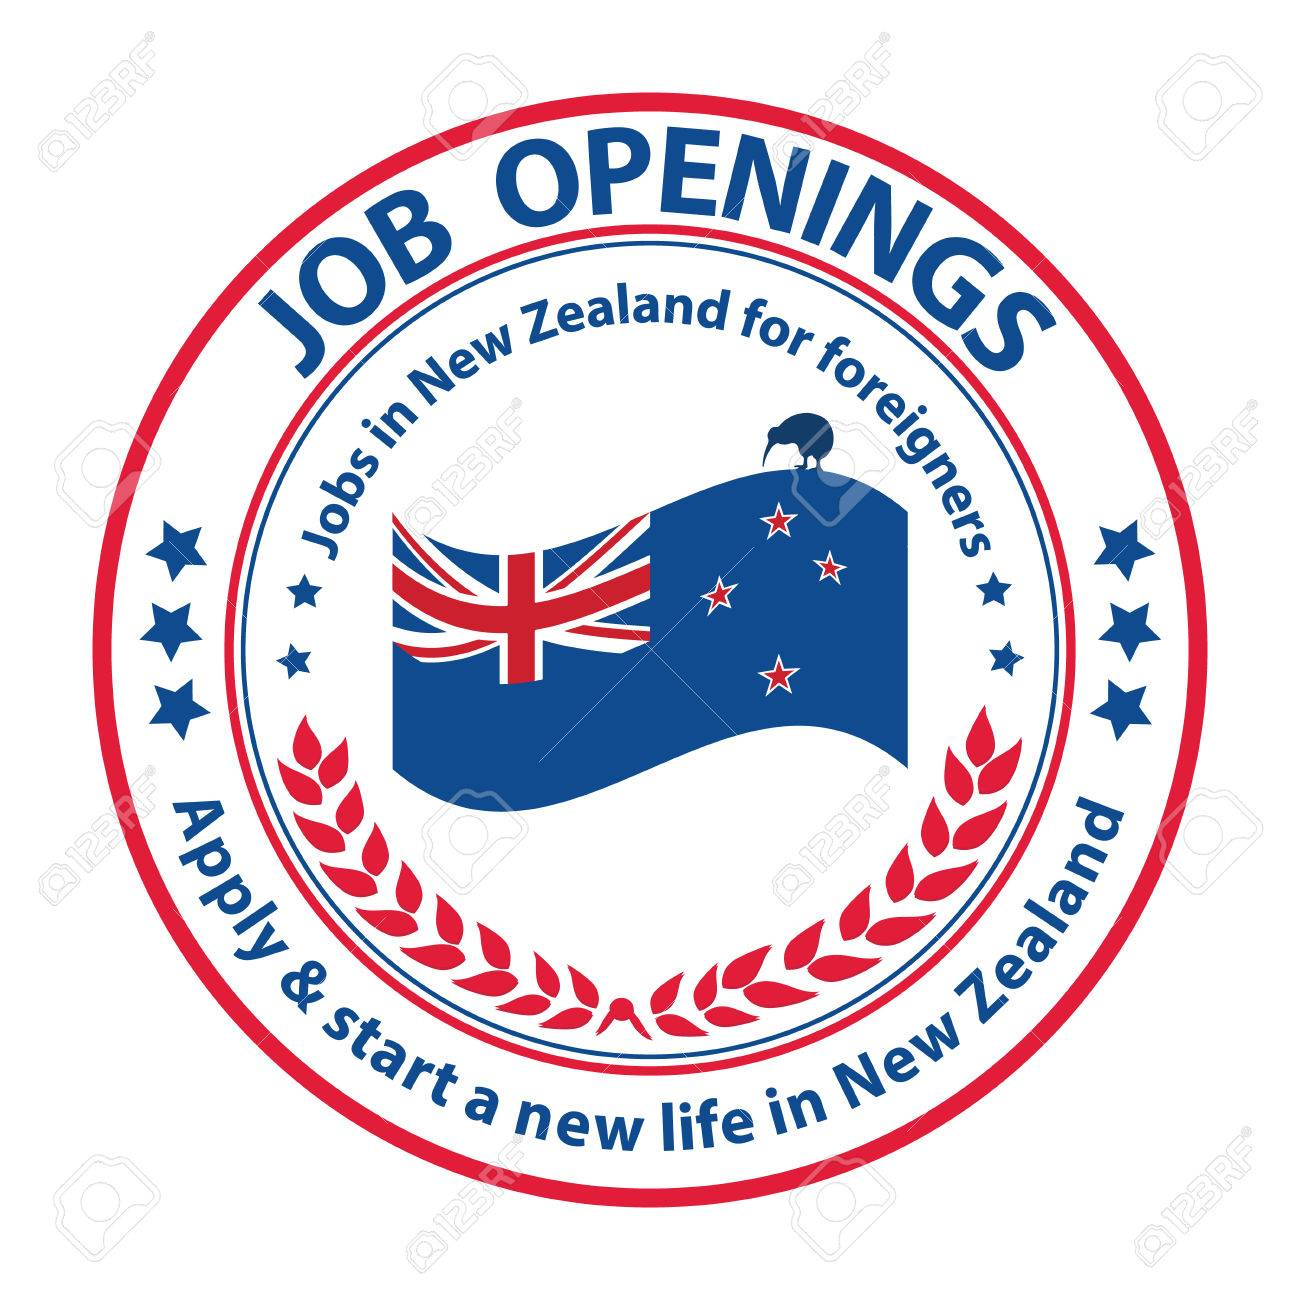 Job openings, Apply and start a new life in New Zealand  Jobs